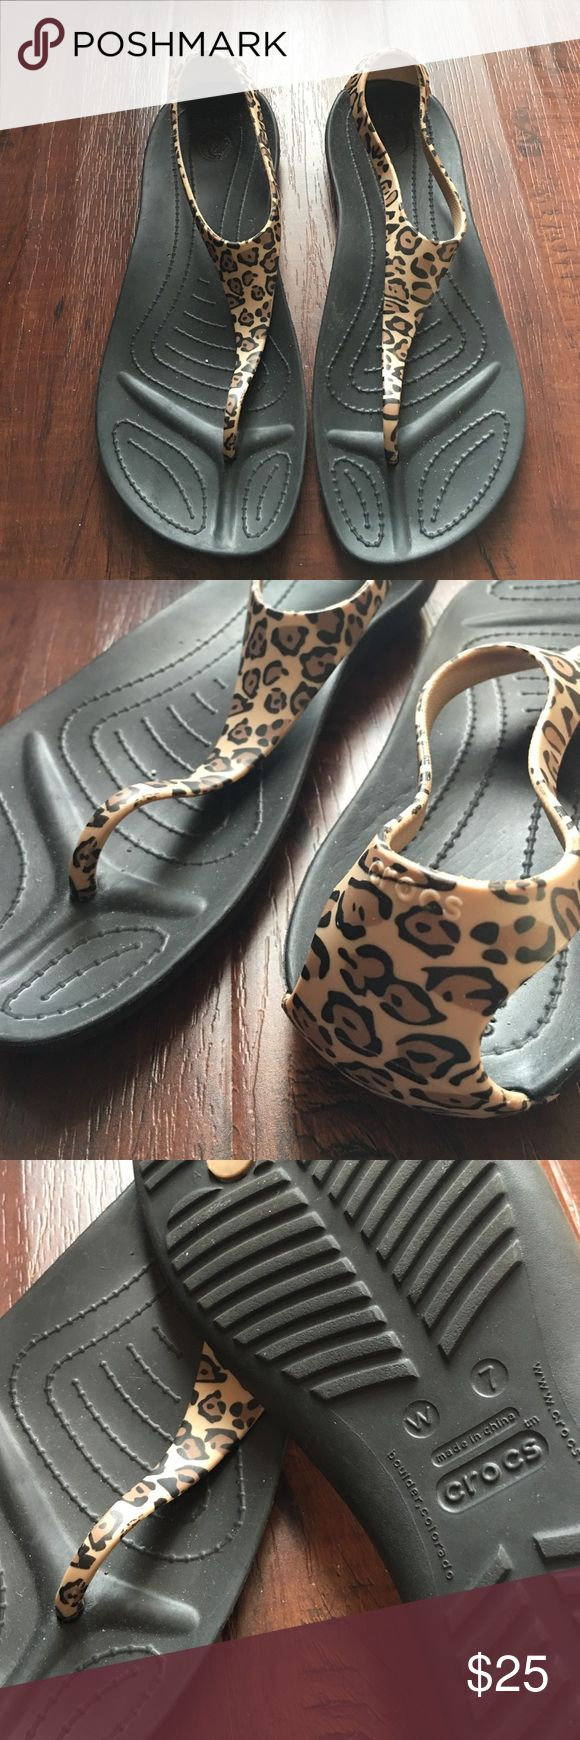 SALE Leopard Crocs Super Cute Croc Sandals! • Great for errands or outdoors! • Easy Clean just spray off with water! • So Comfortable! CROCS Shoes Sandals